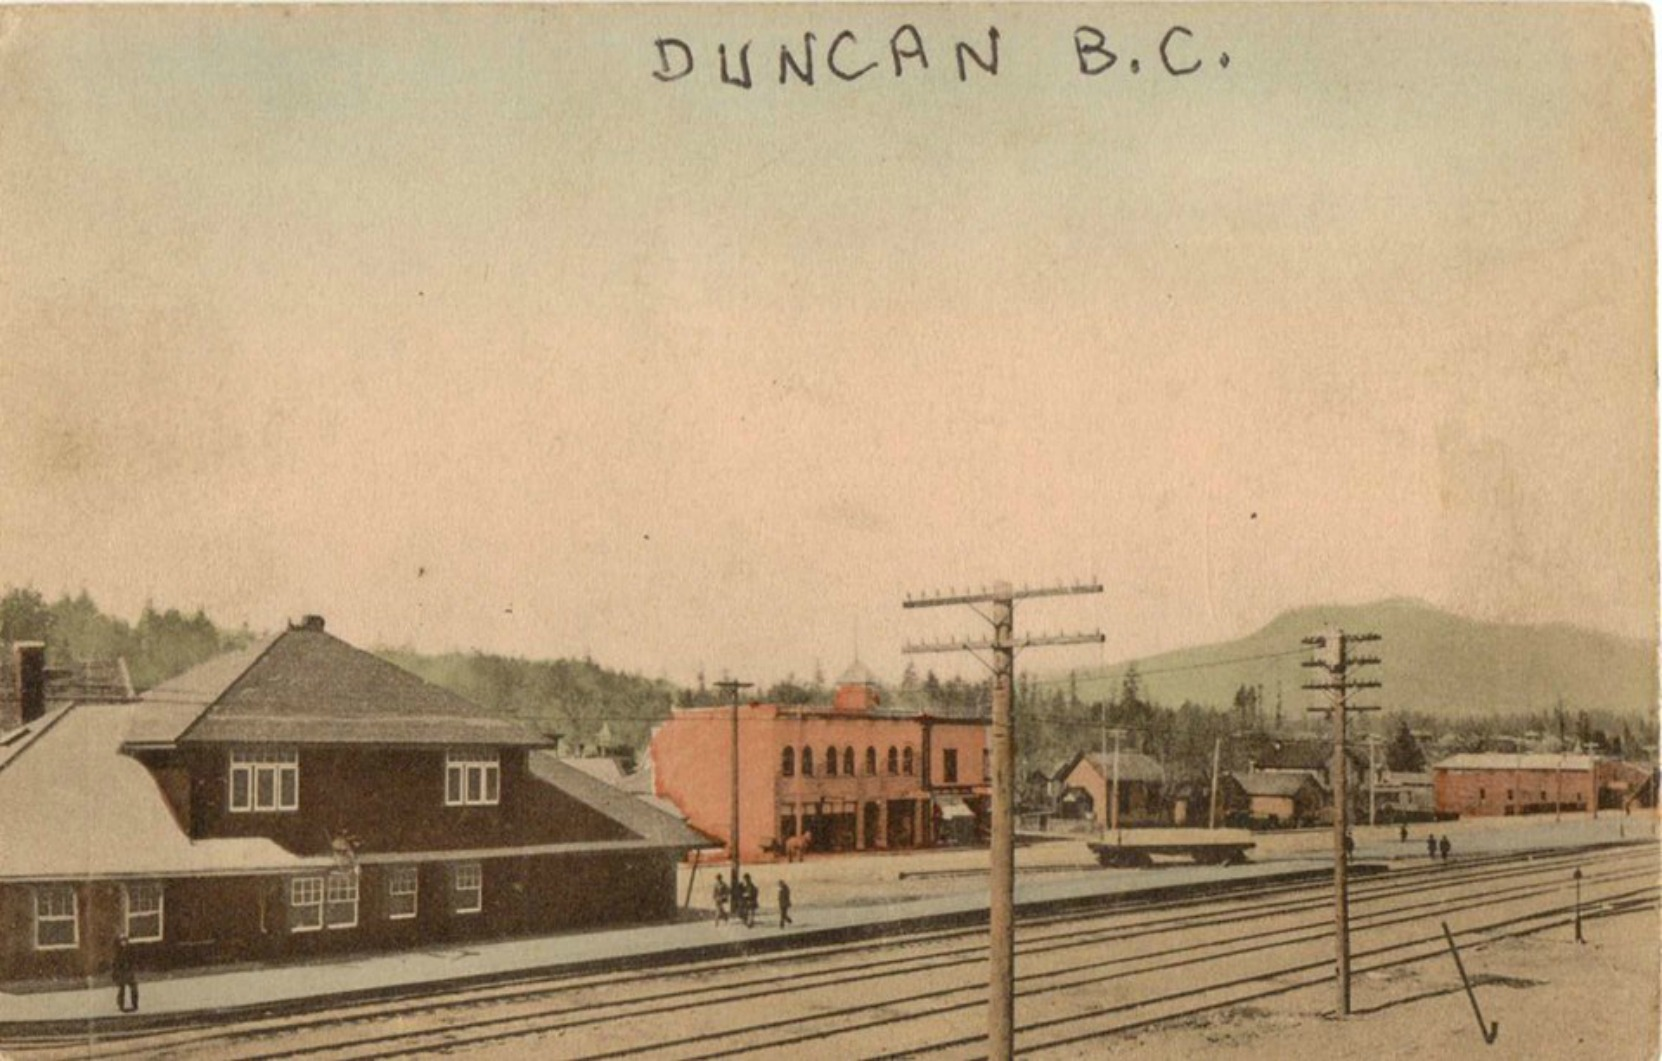 The E&N Railway Station (left) and the Duncan Masonic Temple (center) circa 1913-1914